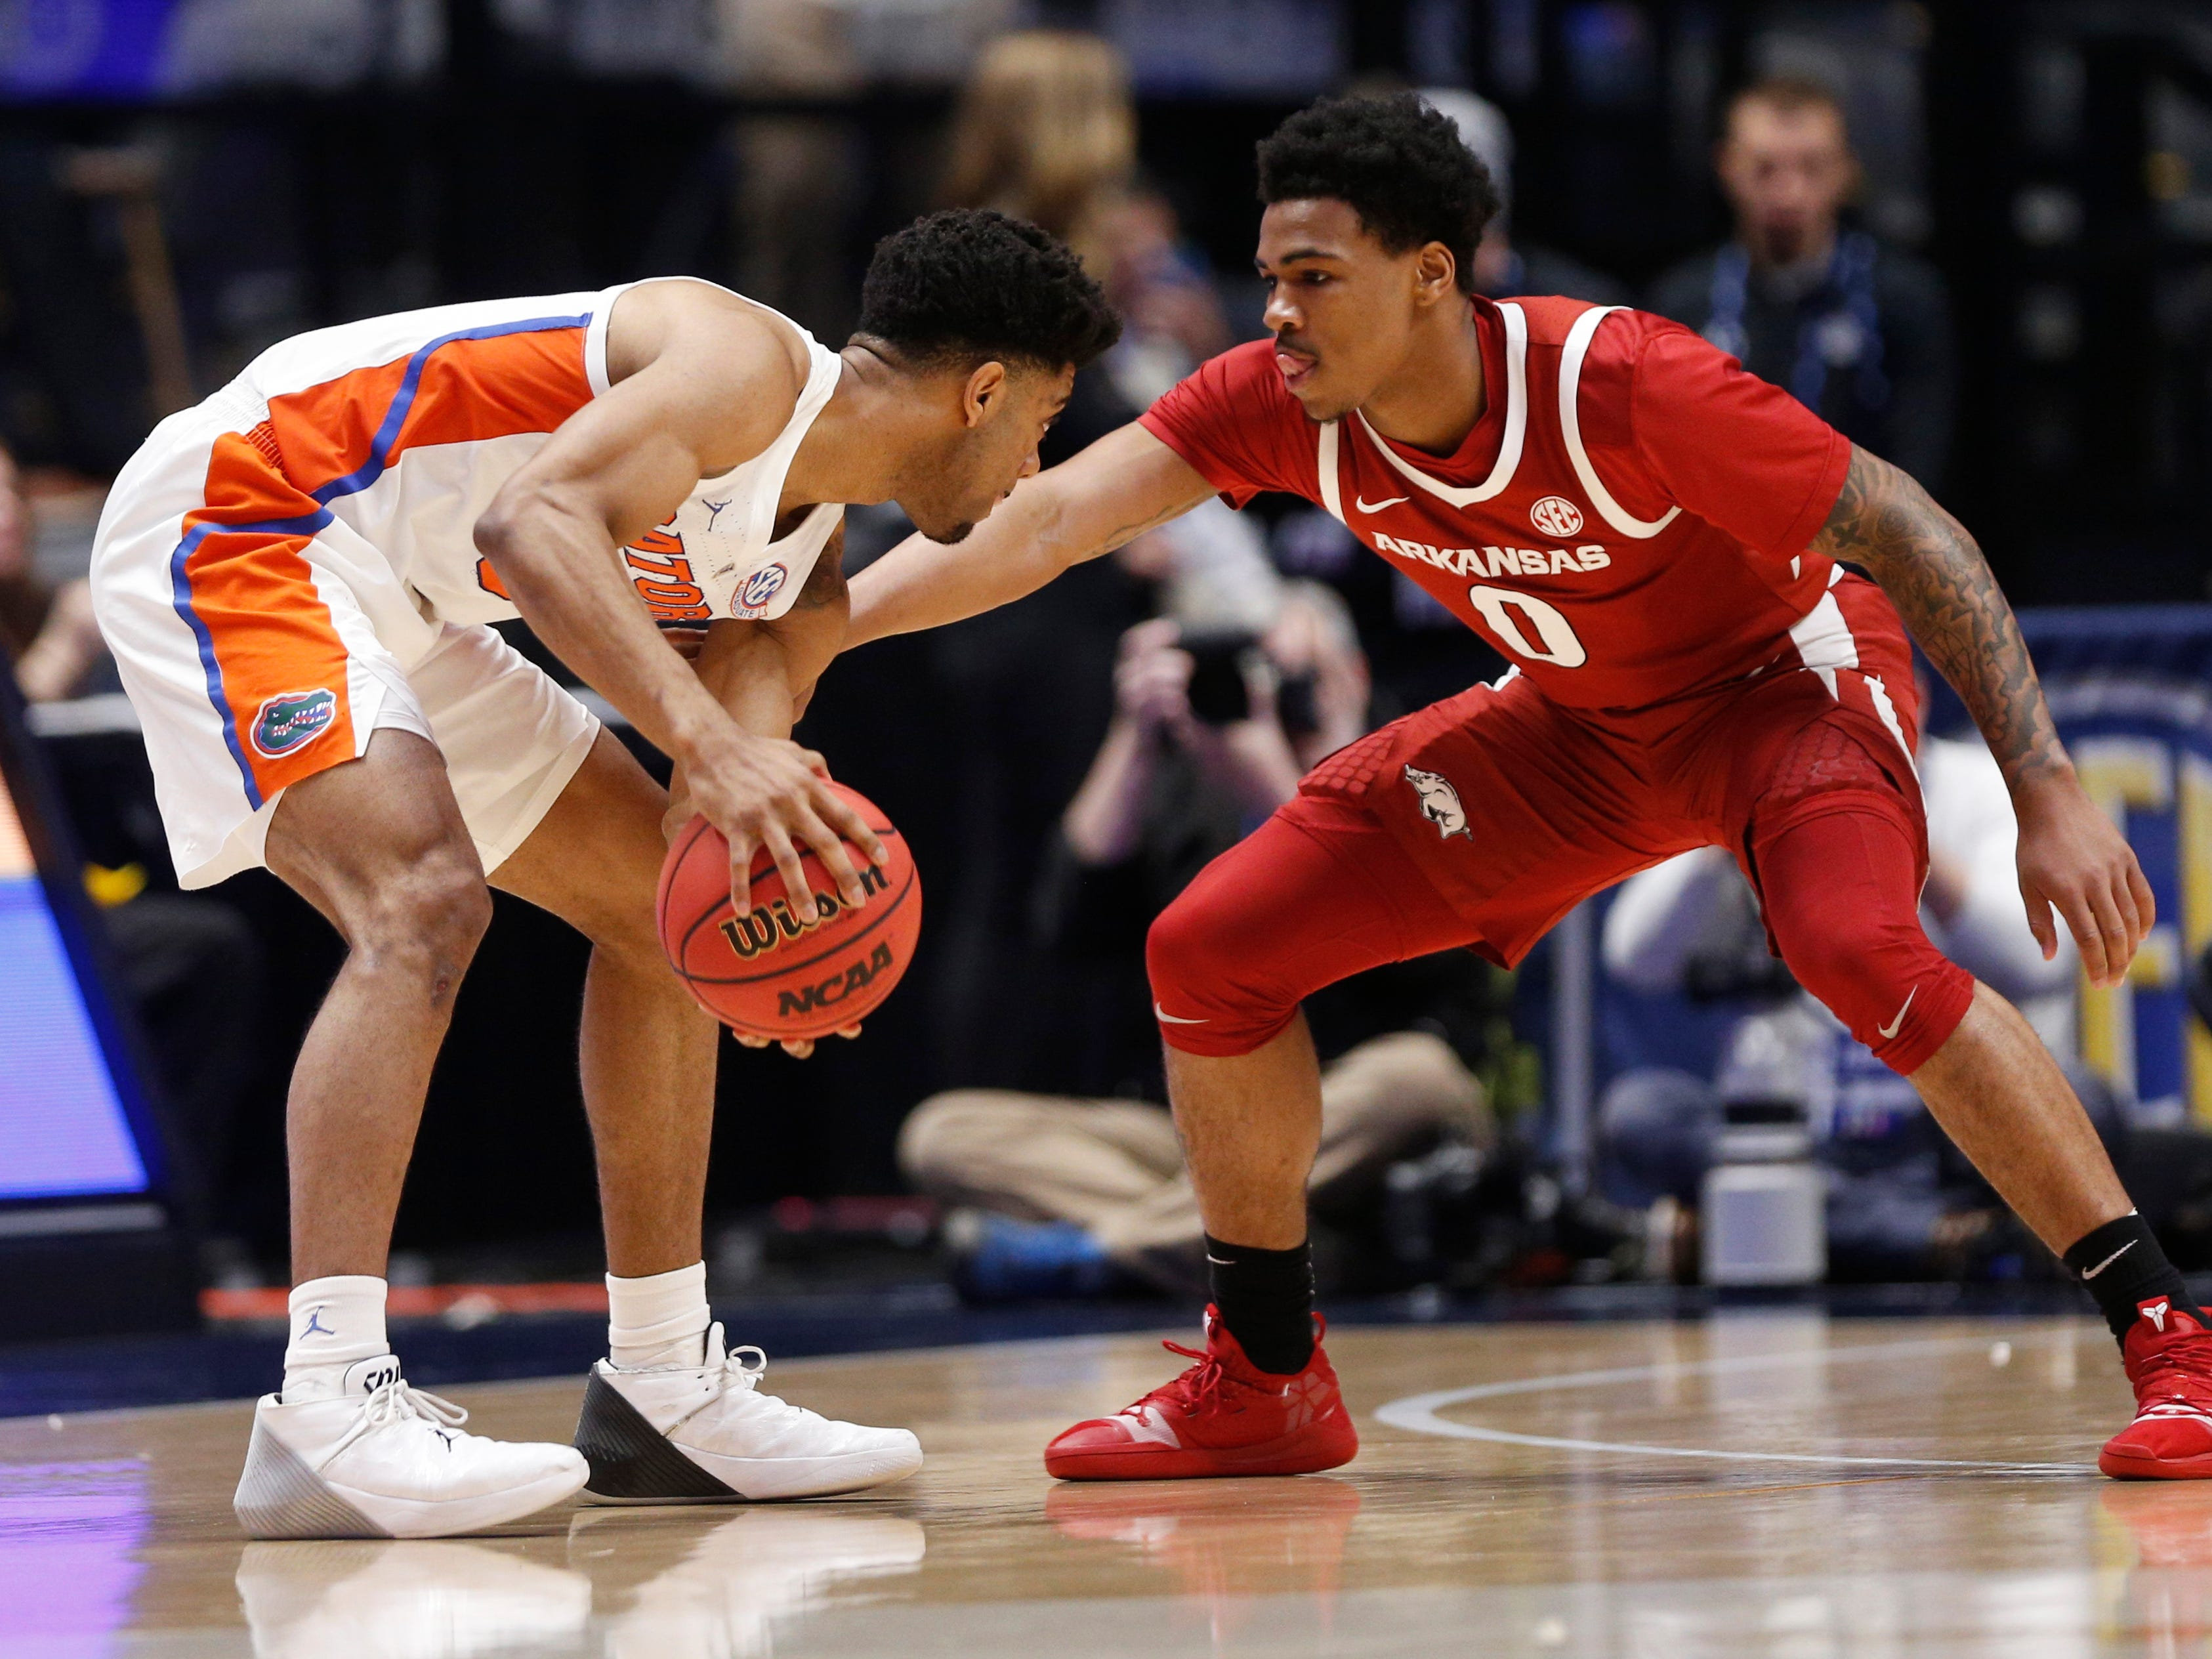 Florida guard Jalen Hudson (3) moves the ball defended by Arkansas guard Desi Sills (0) during the first half of the SEC Men's Basketball Tournament game at Bridgestone Arena in Nashville, Tenn., Thursday, March 14, 2019.